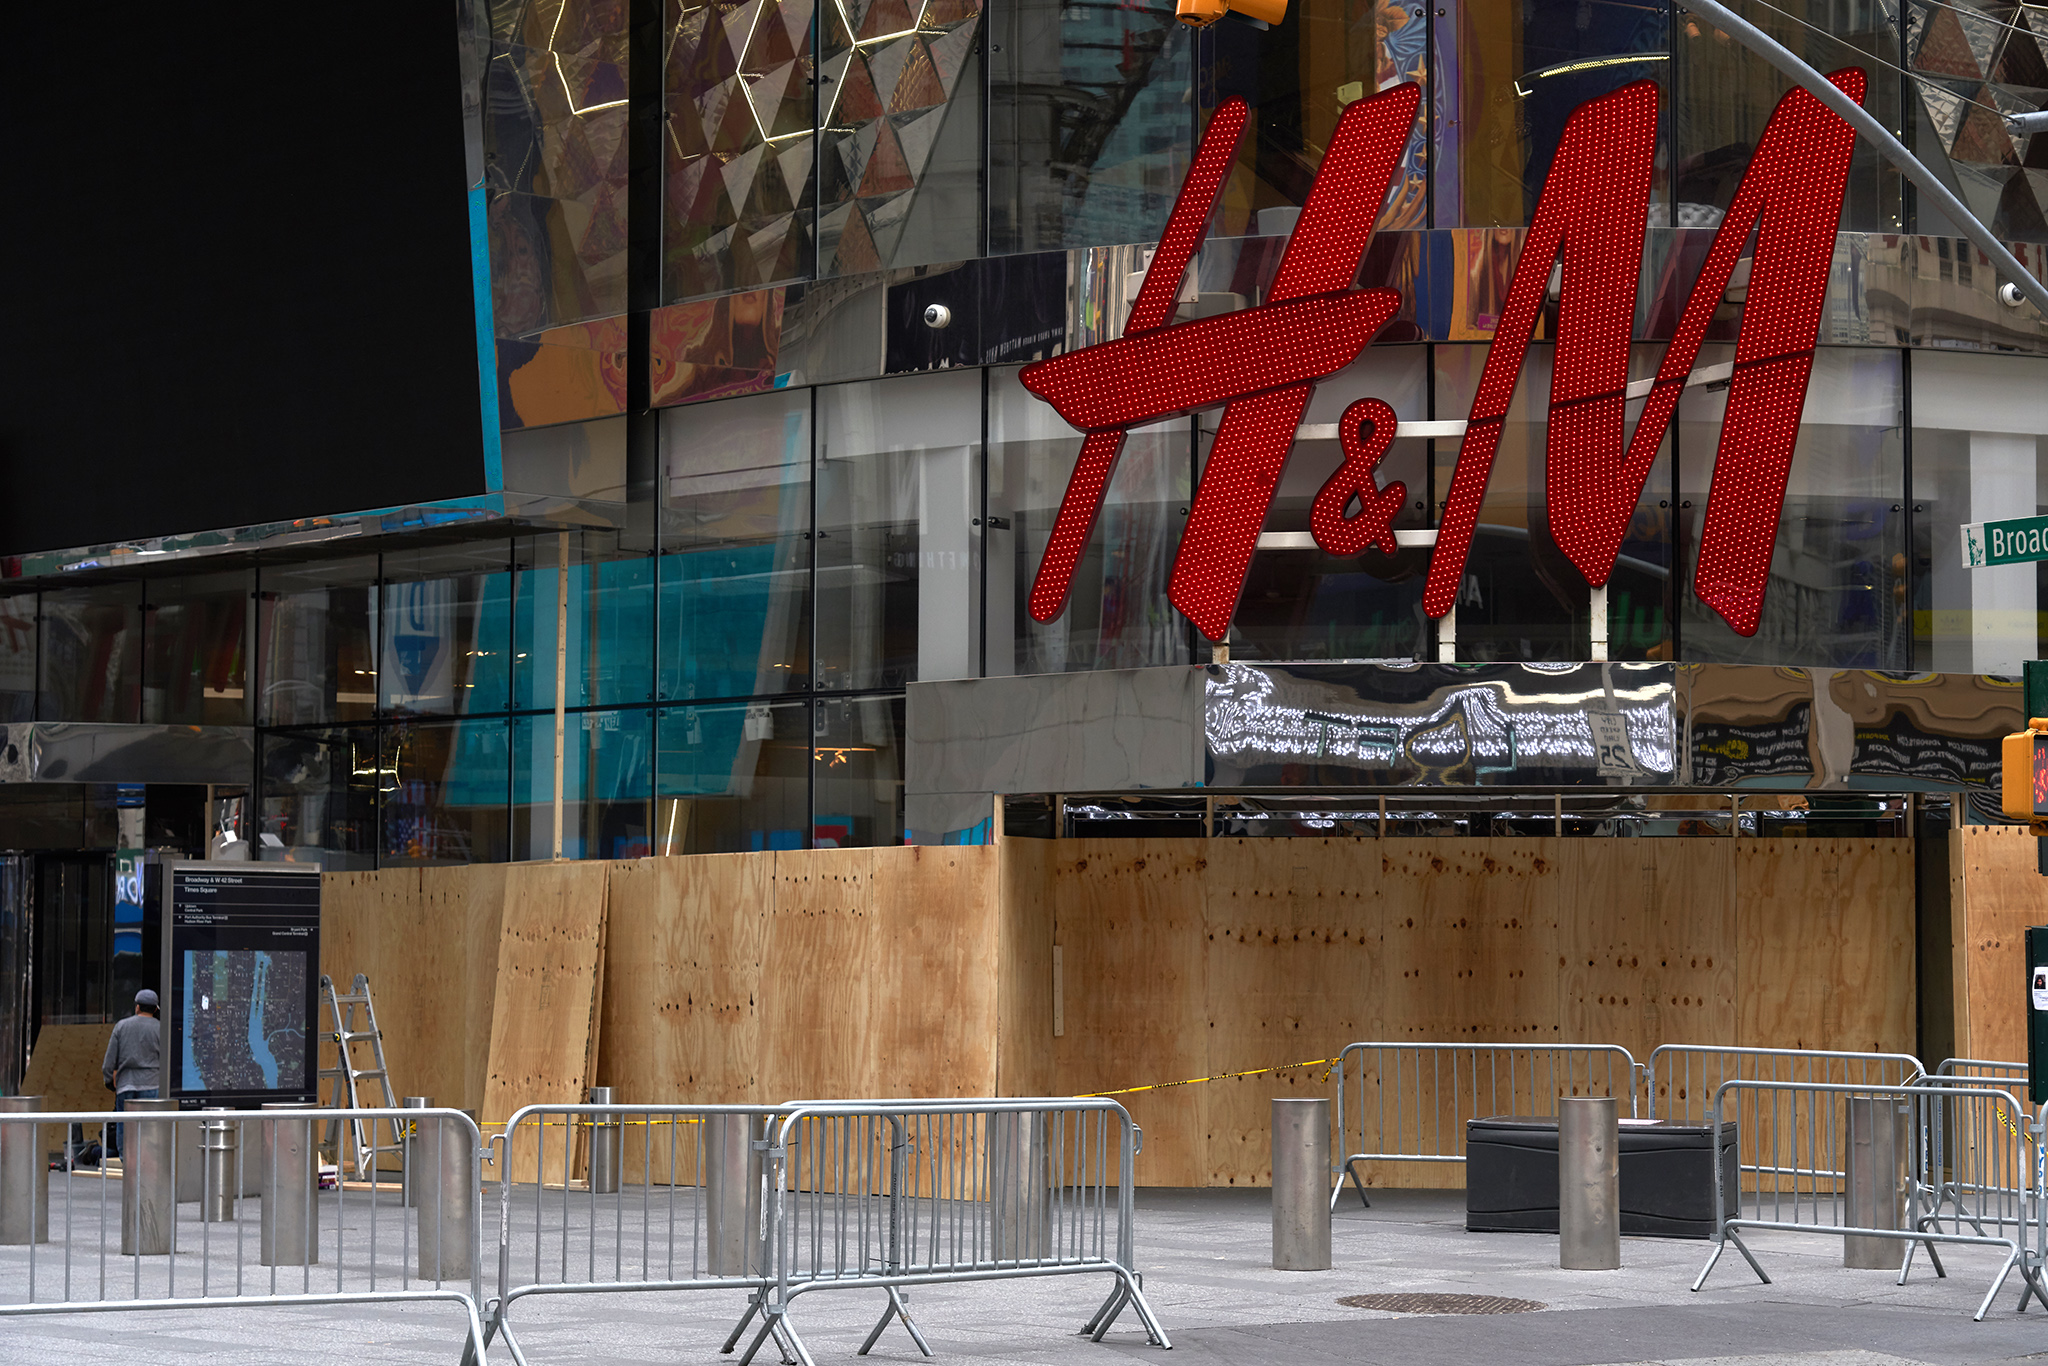 H&M is boarded up in Herald Square, New York.